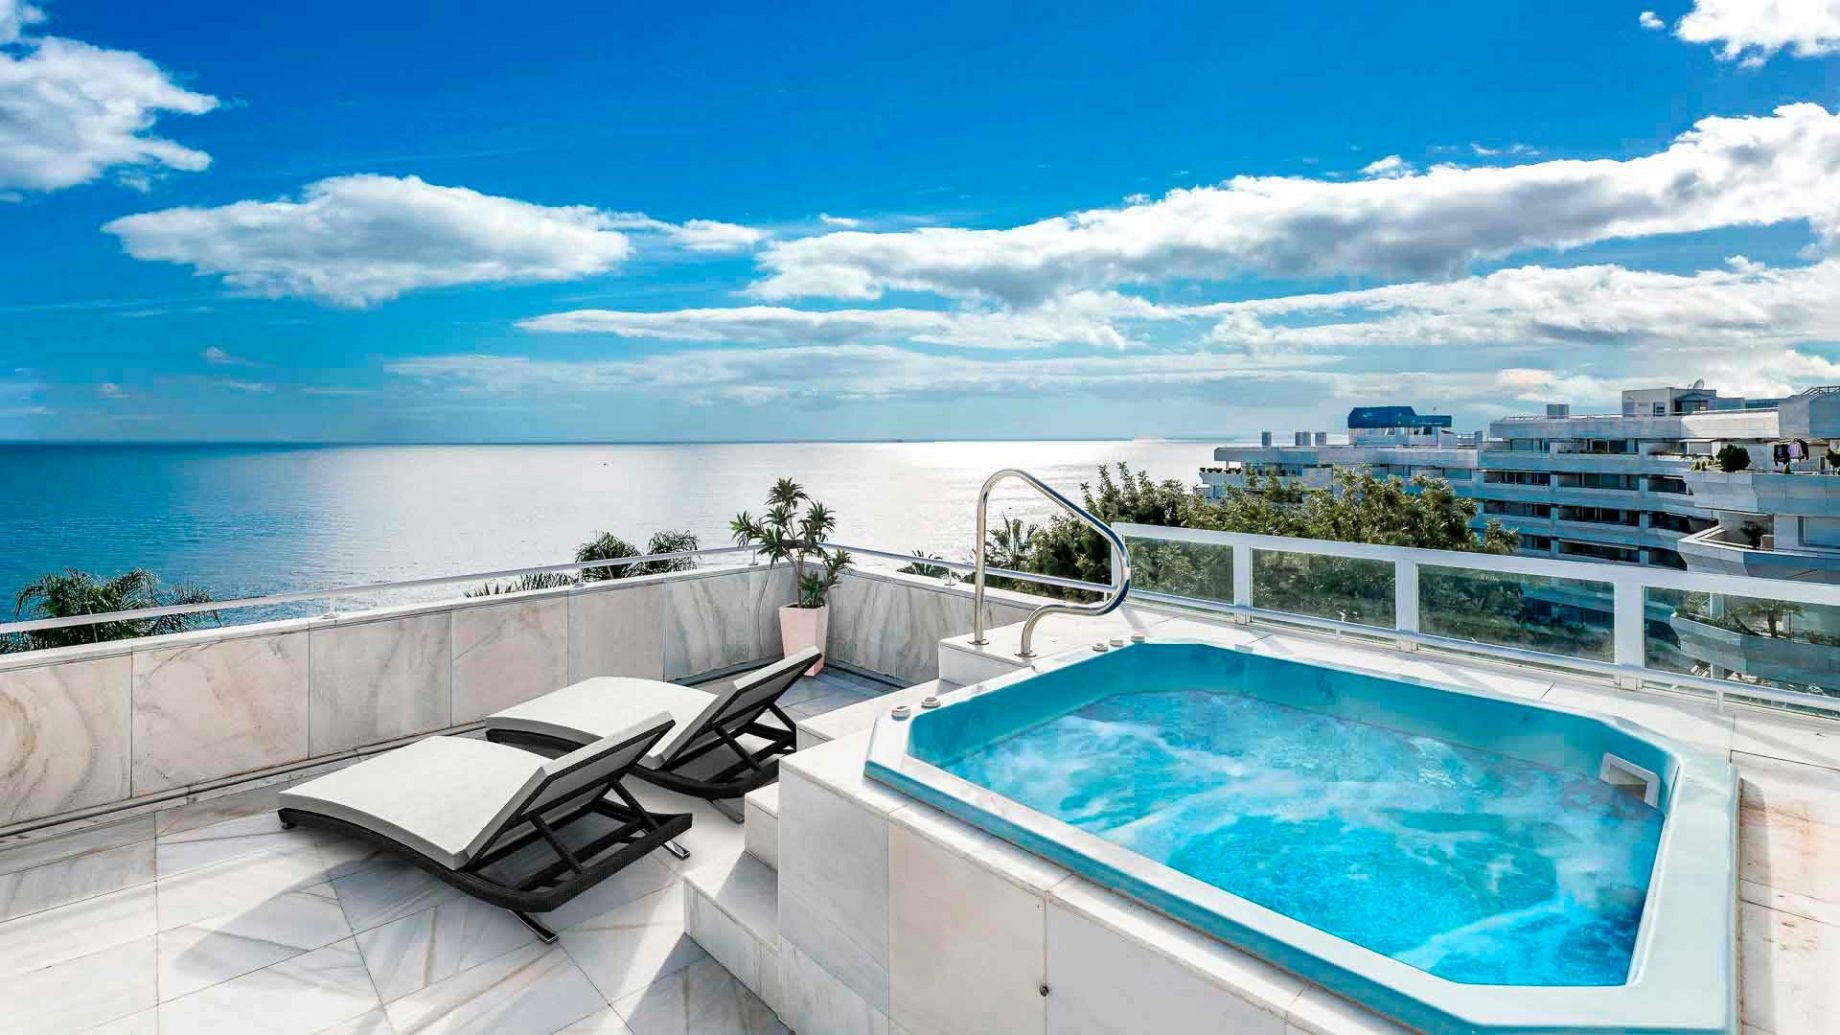 Penthouse in Mare Nostrum with panoramic sea views